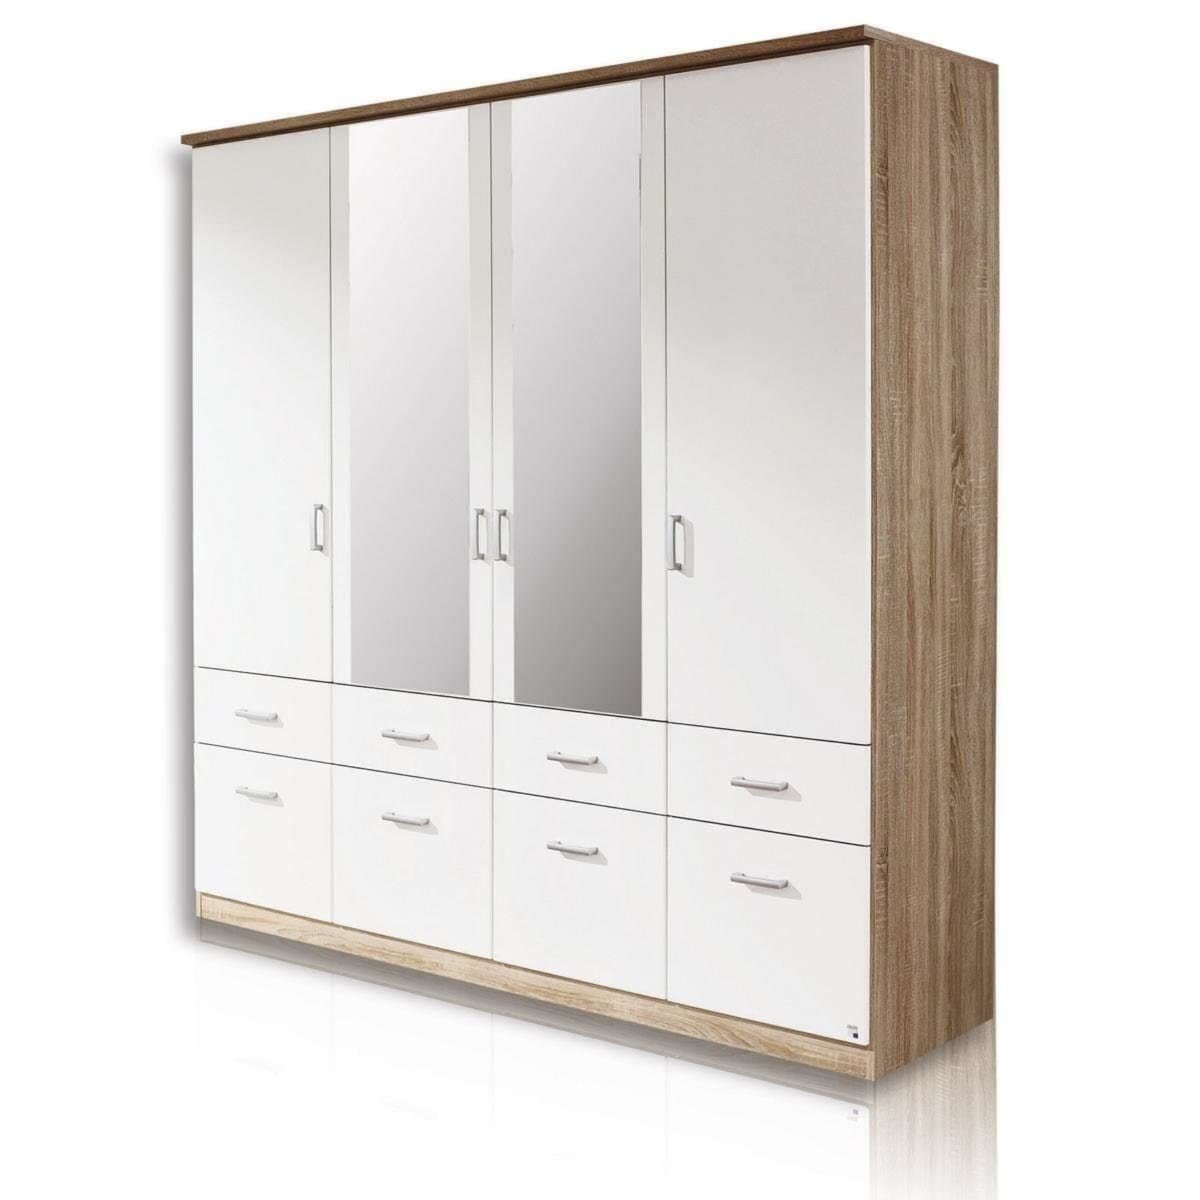 kleiderschrank bremen sonoma eiche wei 181 cm breit. Black Bedroom Furniture Sets. Home Design Ideas